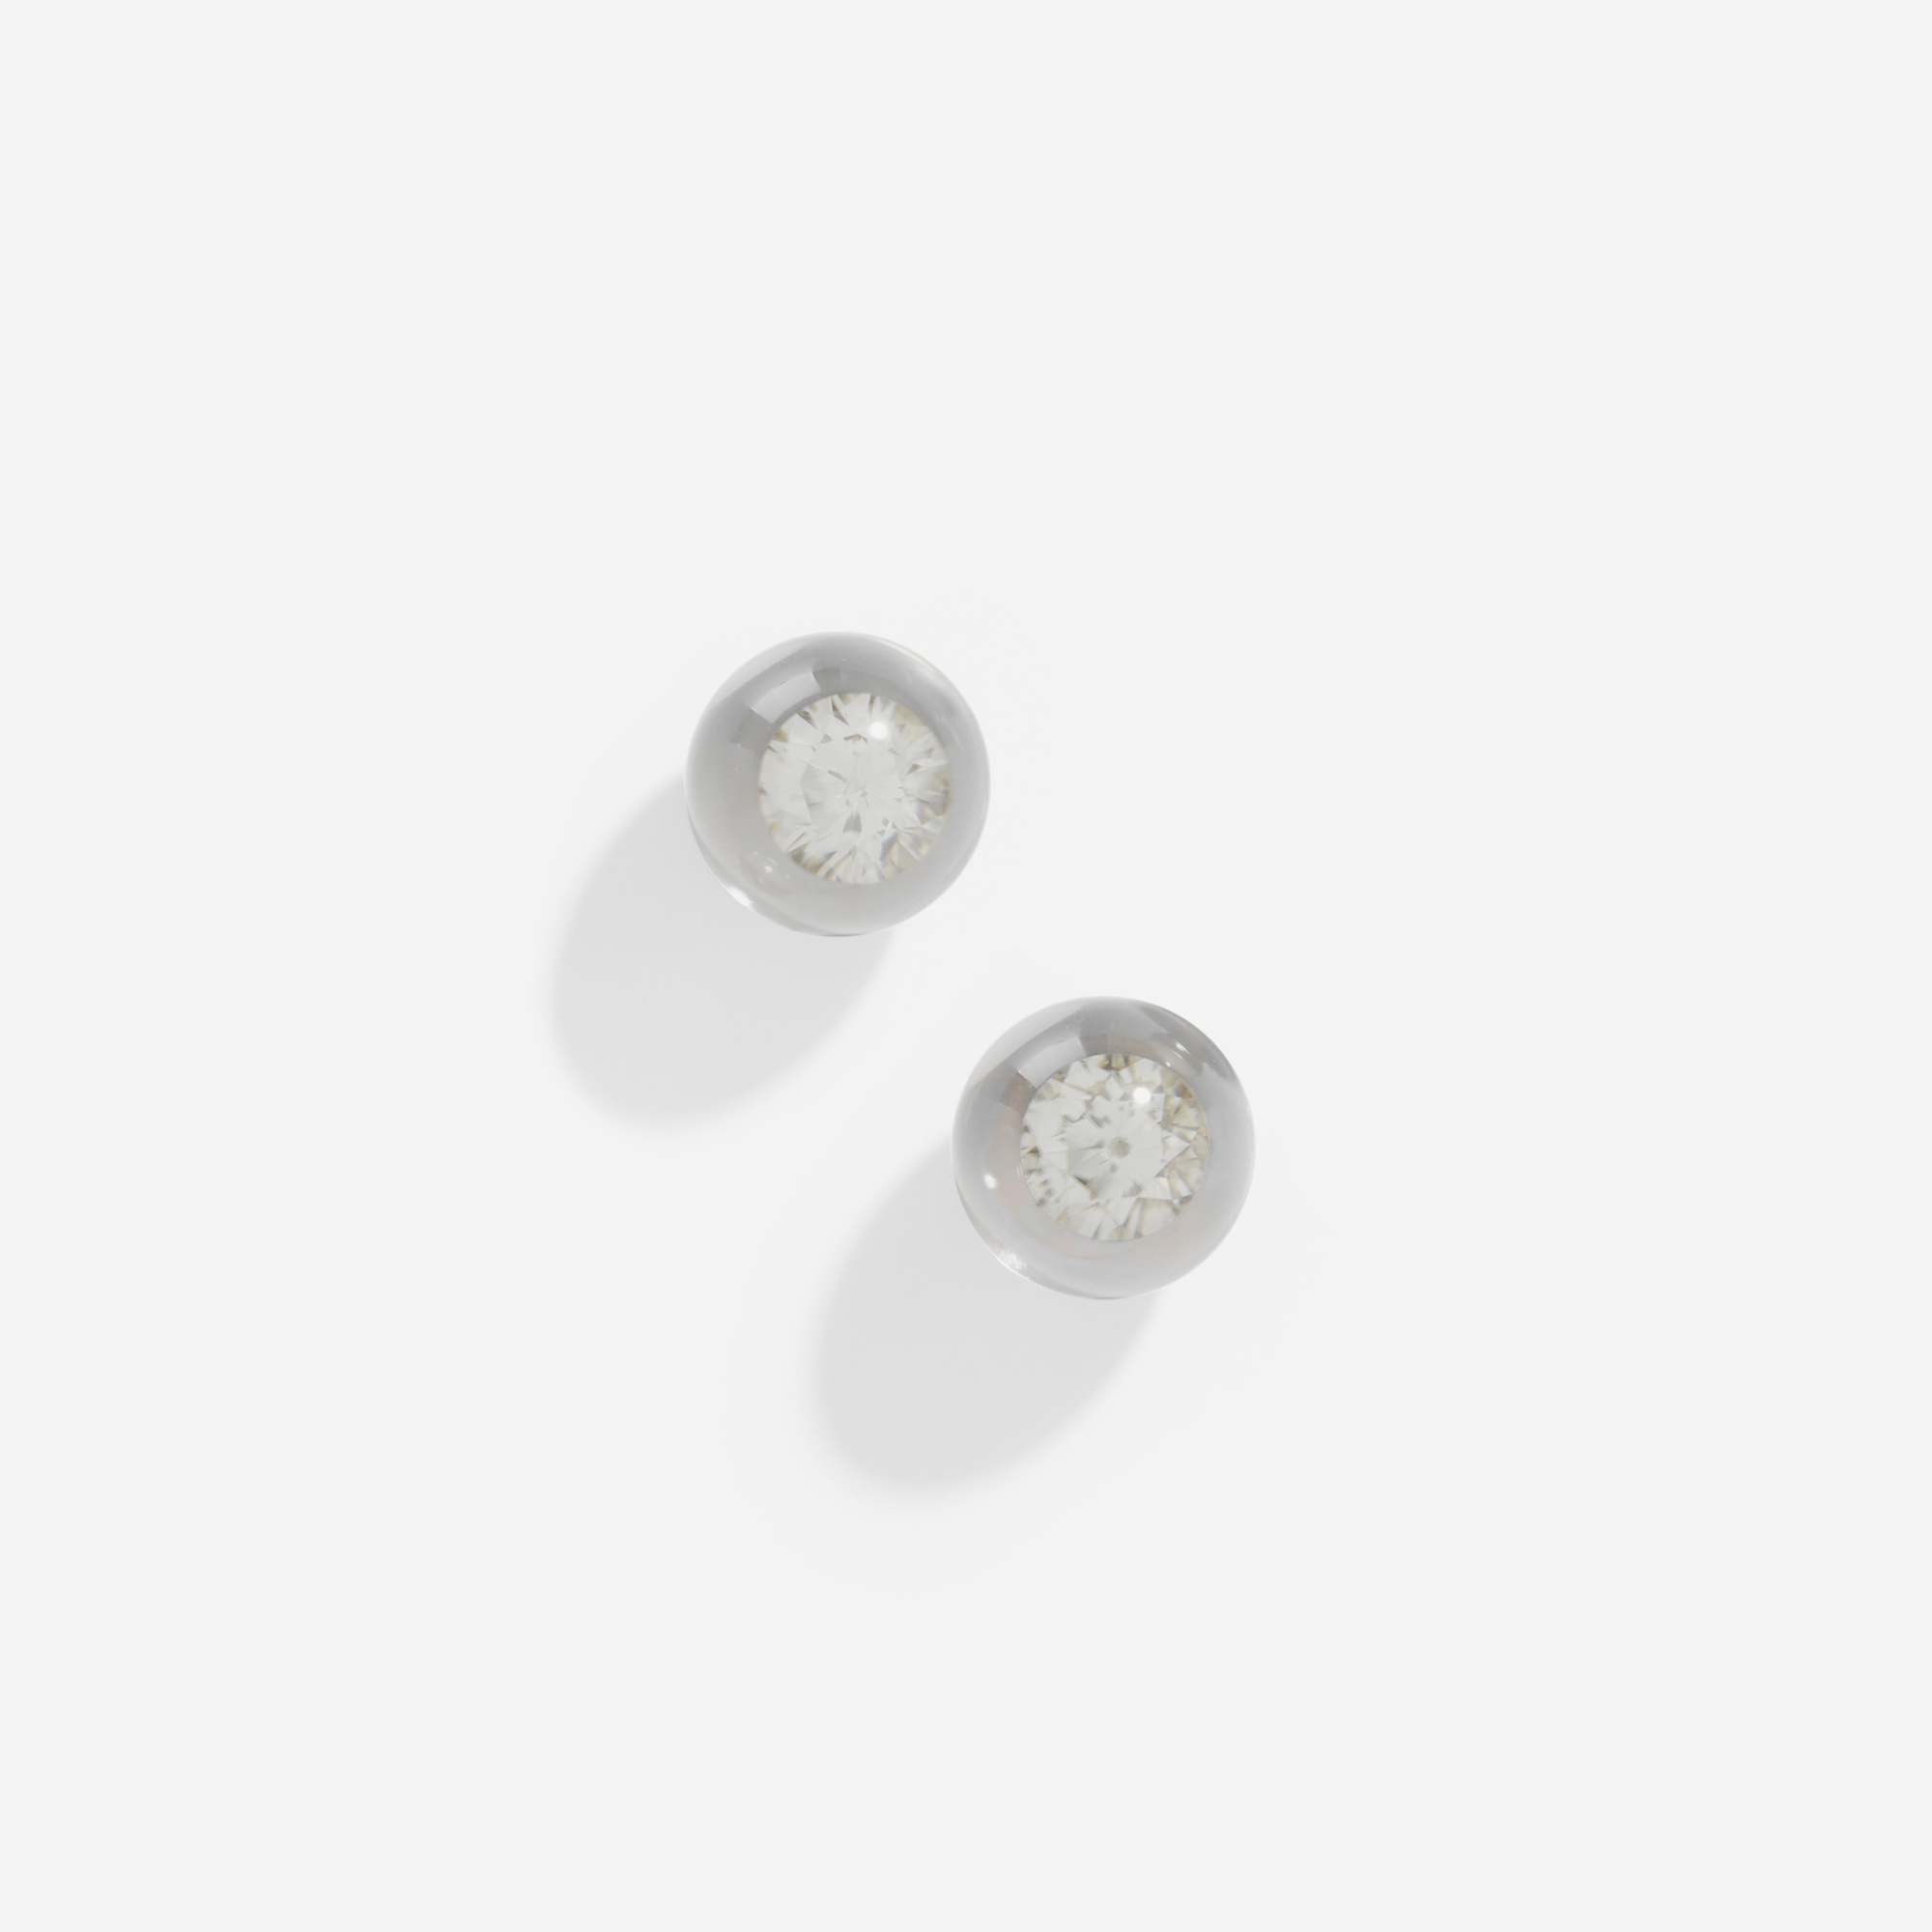 303: Mauboussin / A pair of gold, rock crystal and diamond earrings (1 of 1)